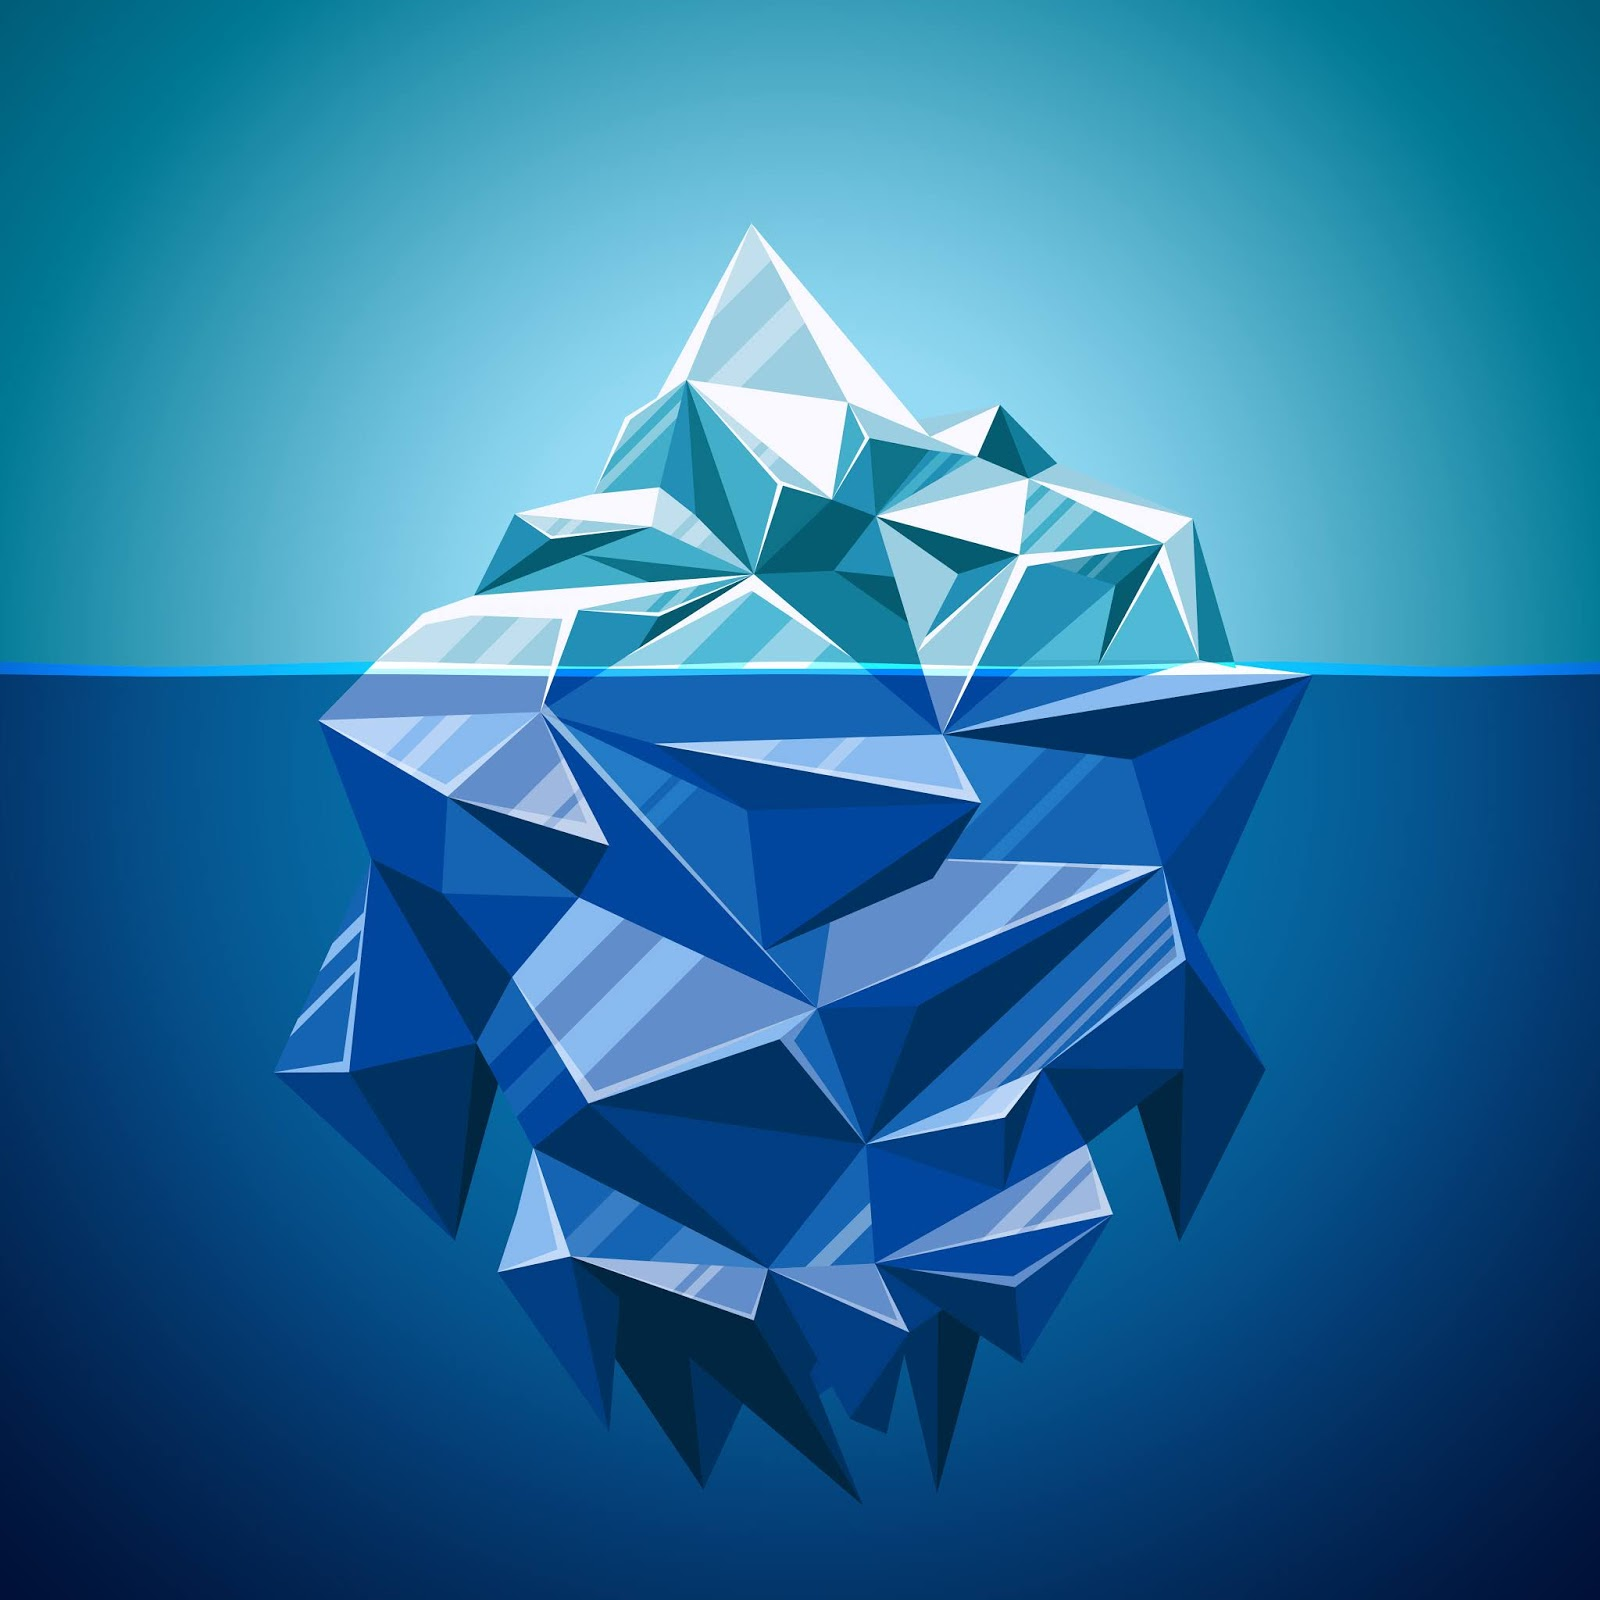 Snow Vector Iceberg Mountain Polygonal Style Water Sea Underwater Antarctic Landscape Free Download Vector CDR, AI, EPS and PNG Formats